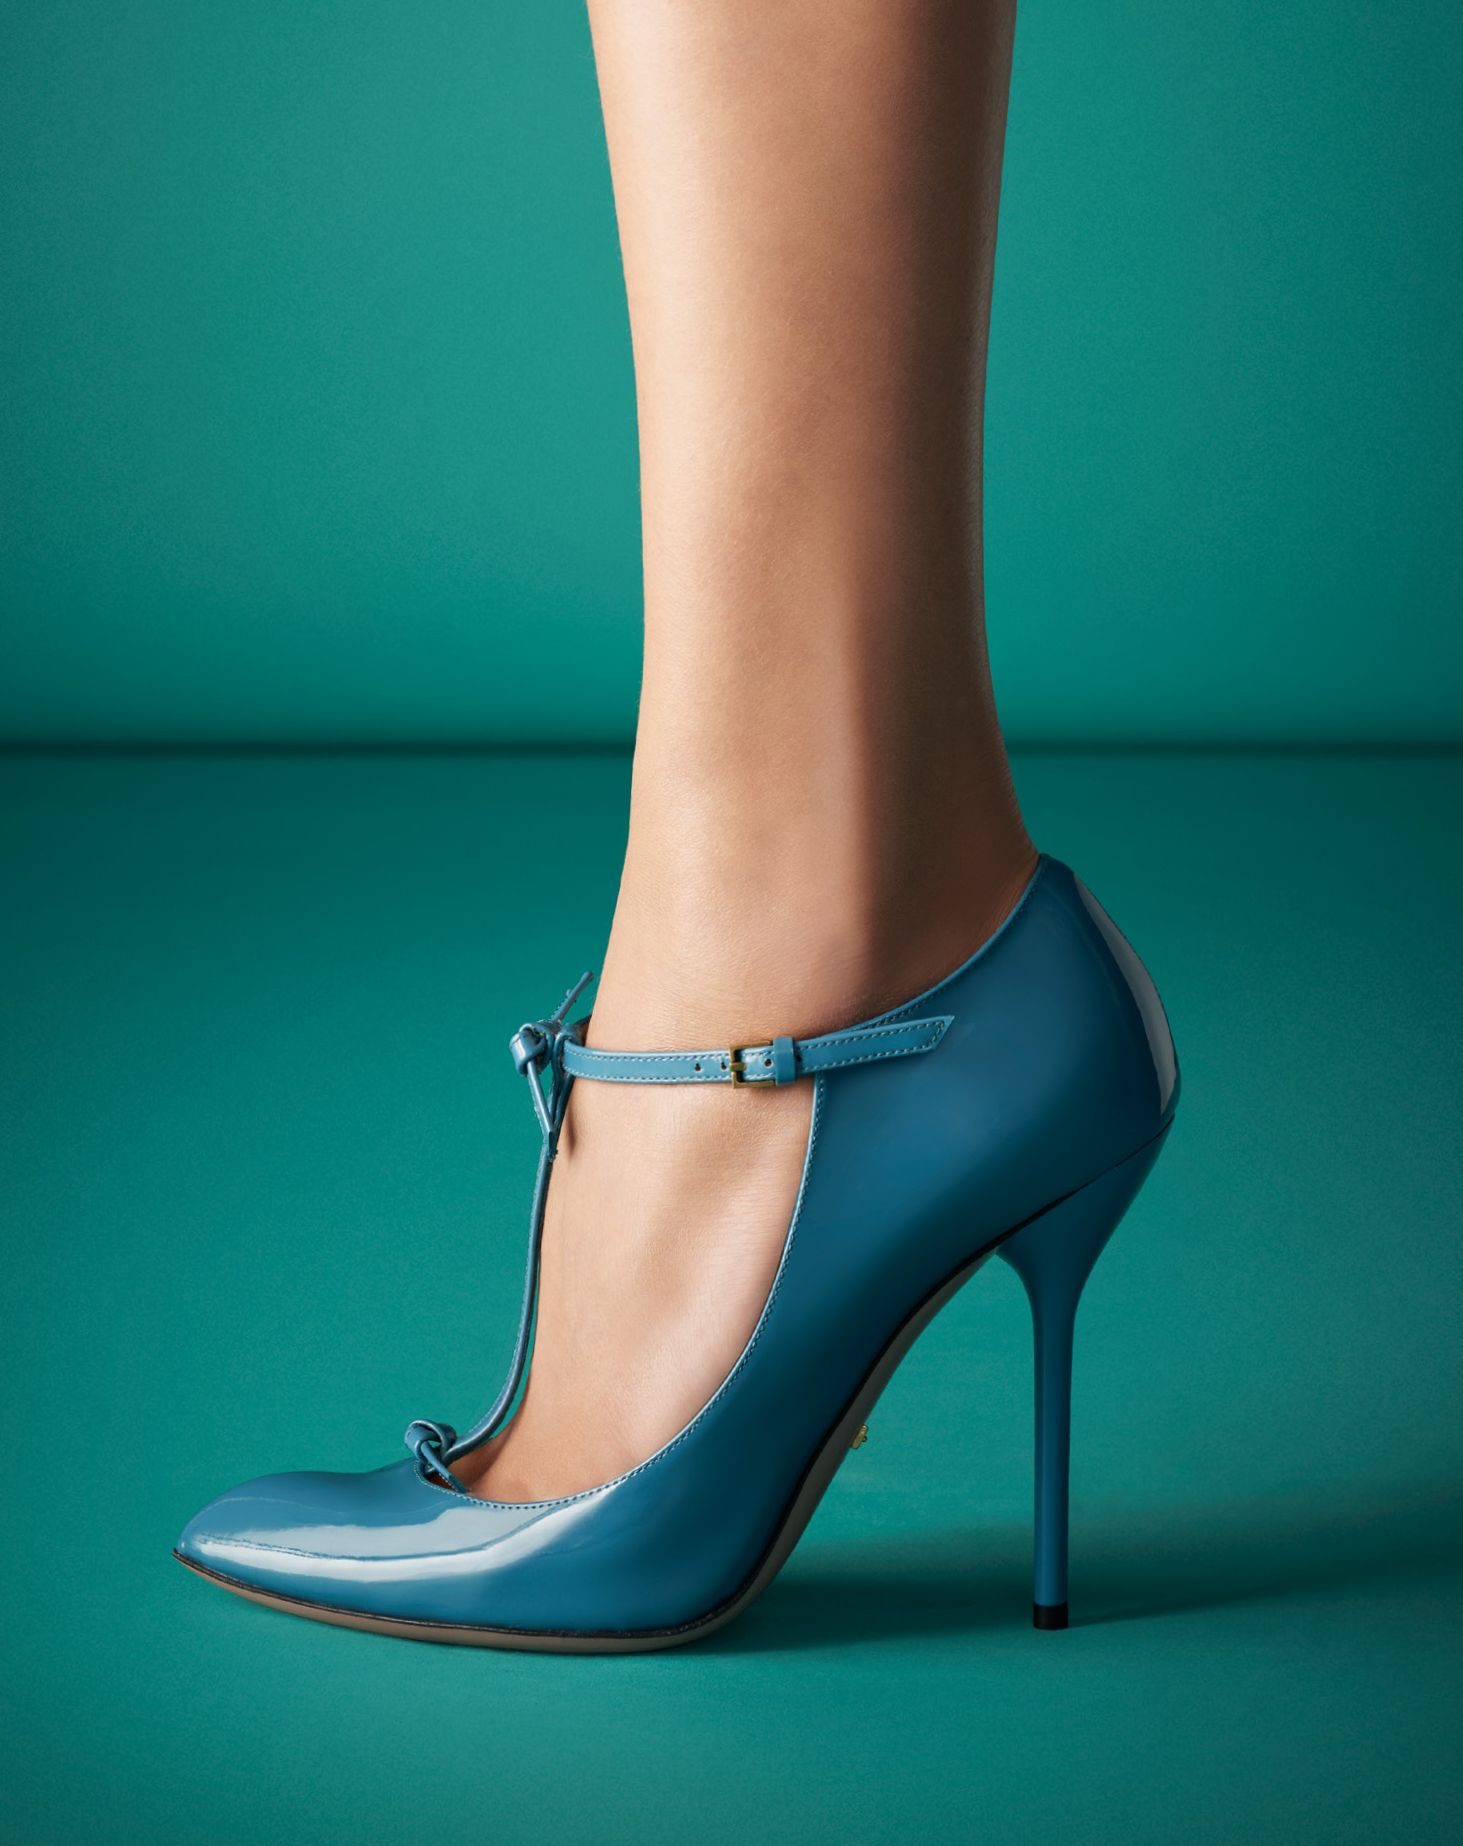 Gucci Patent Leather T-Strap Pump...I'd never wear them but they're gorgeous!